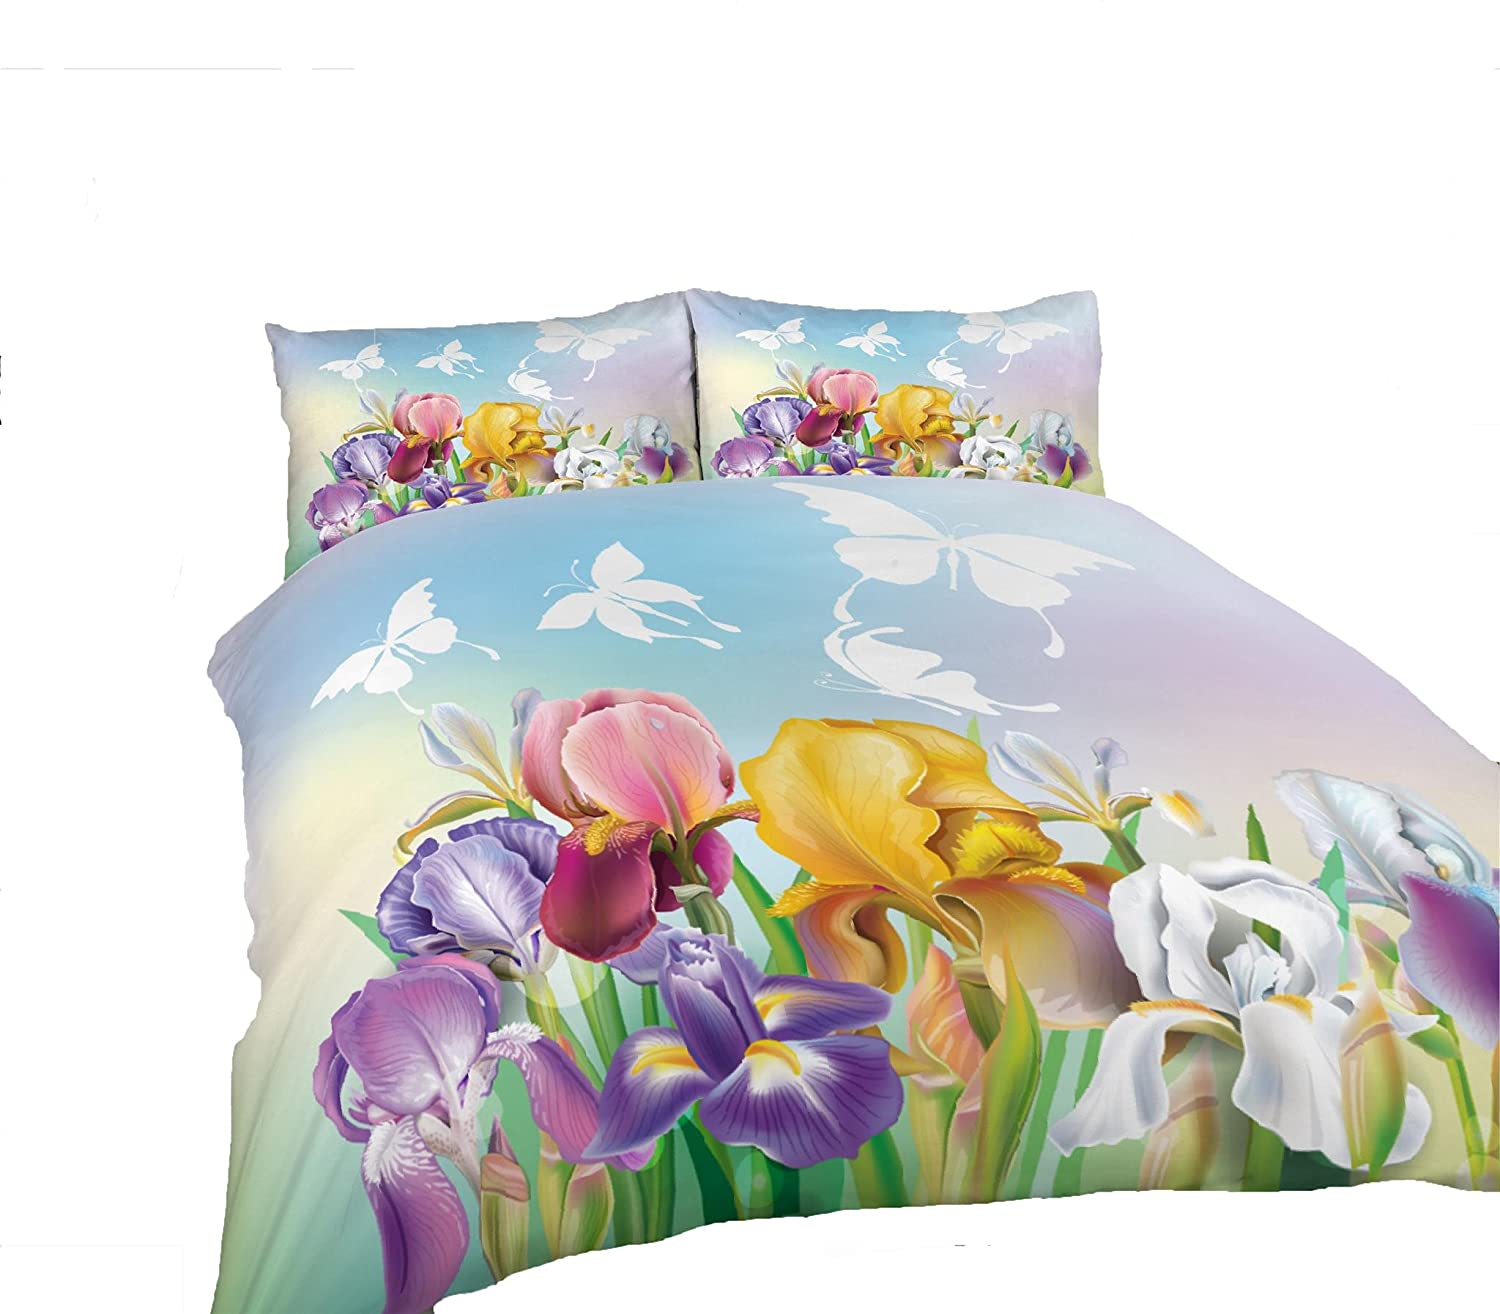 Adam Home 3D Digital Printing Bett Leinen Bettw/äsche-Set Bettbezug Alle Gr/ö/ßen 1x Kissenbezug Butterflies And Flowers